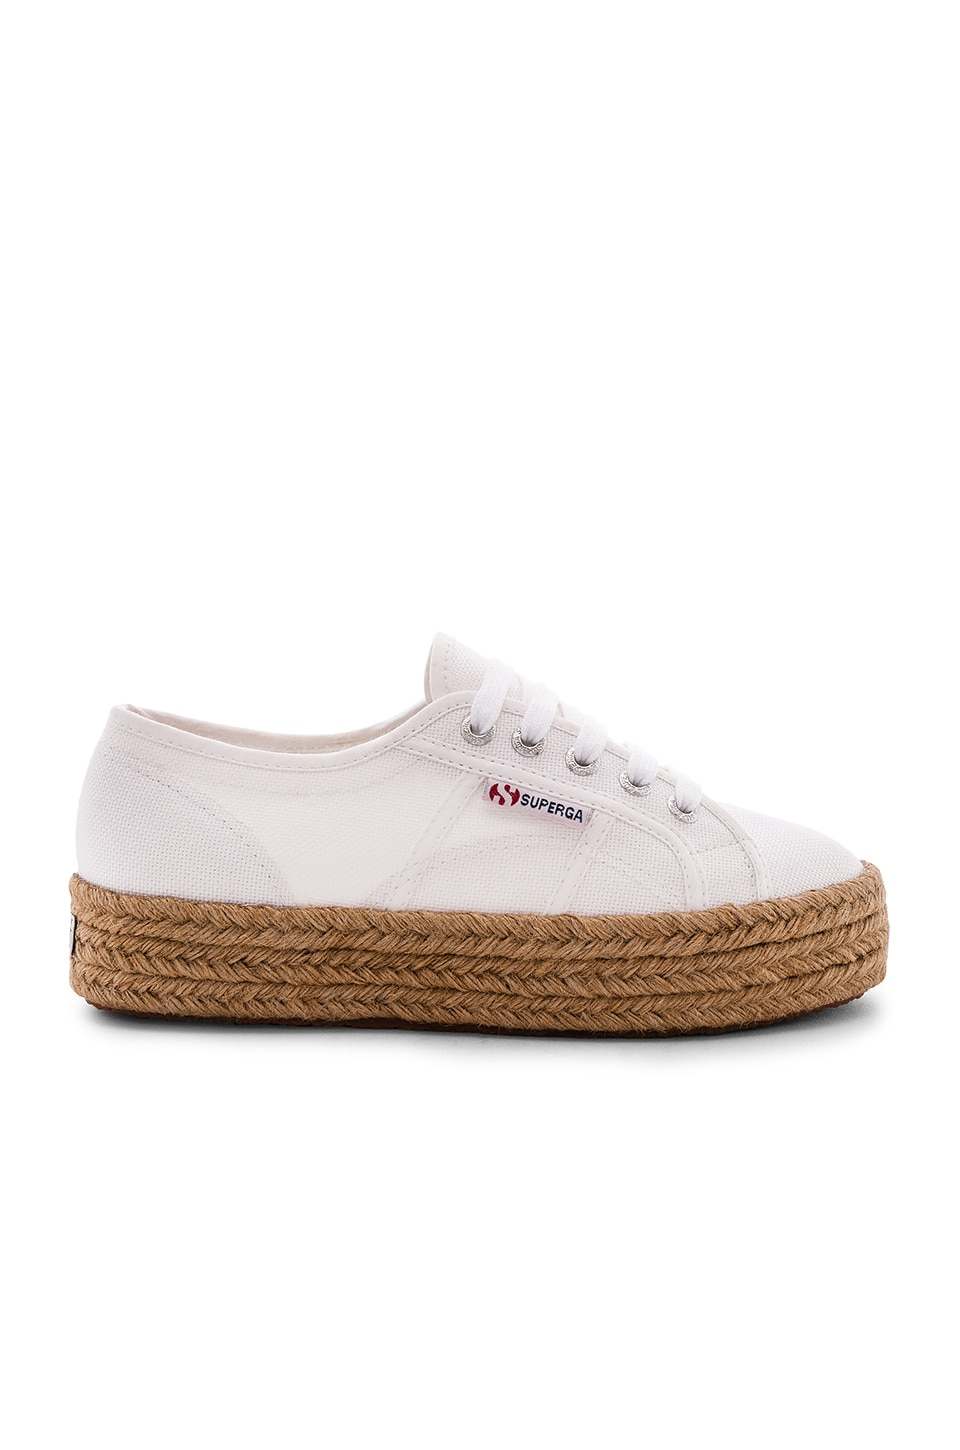 Superga Platform Espadrille in White